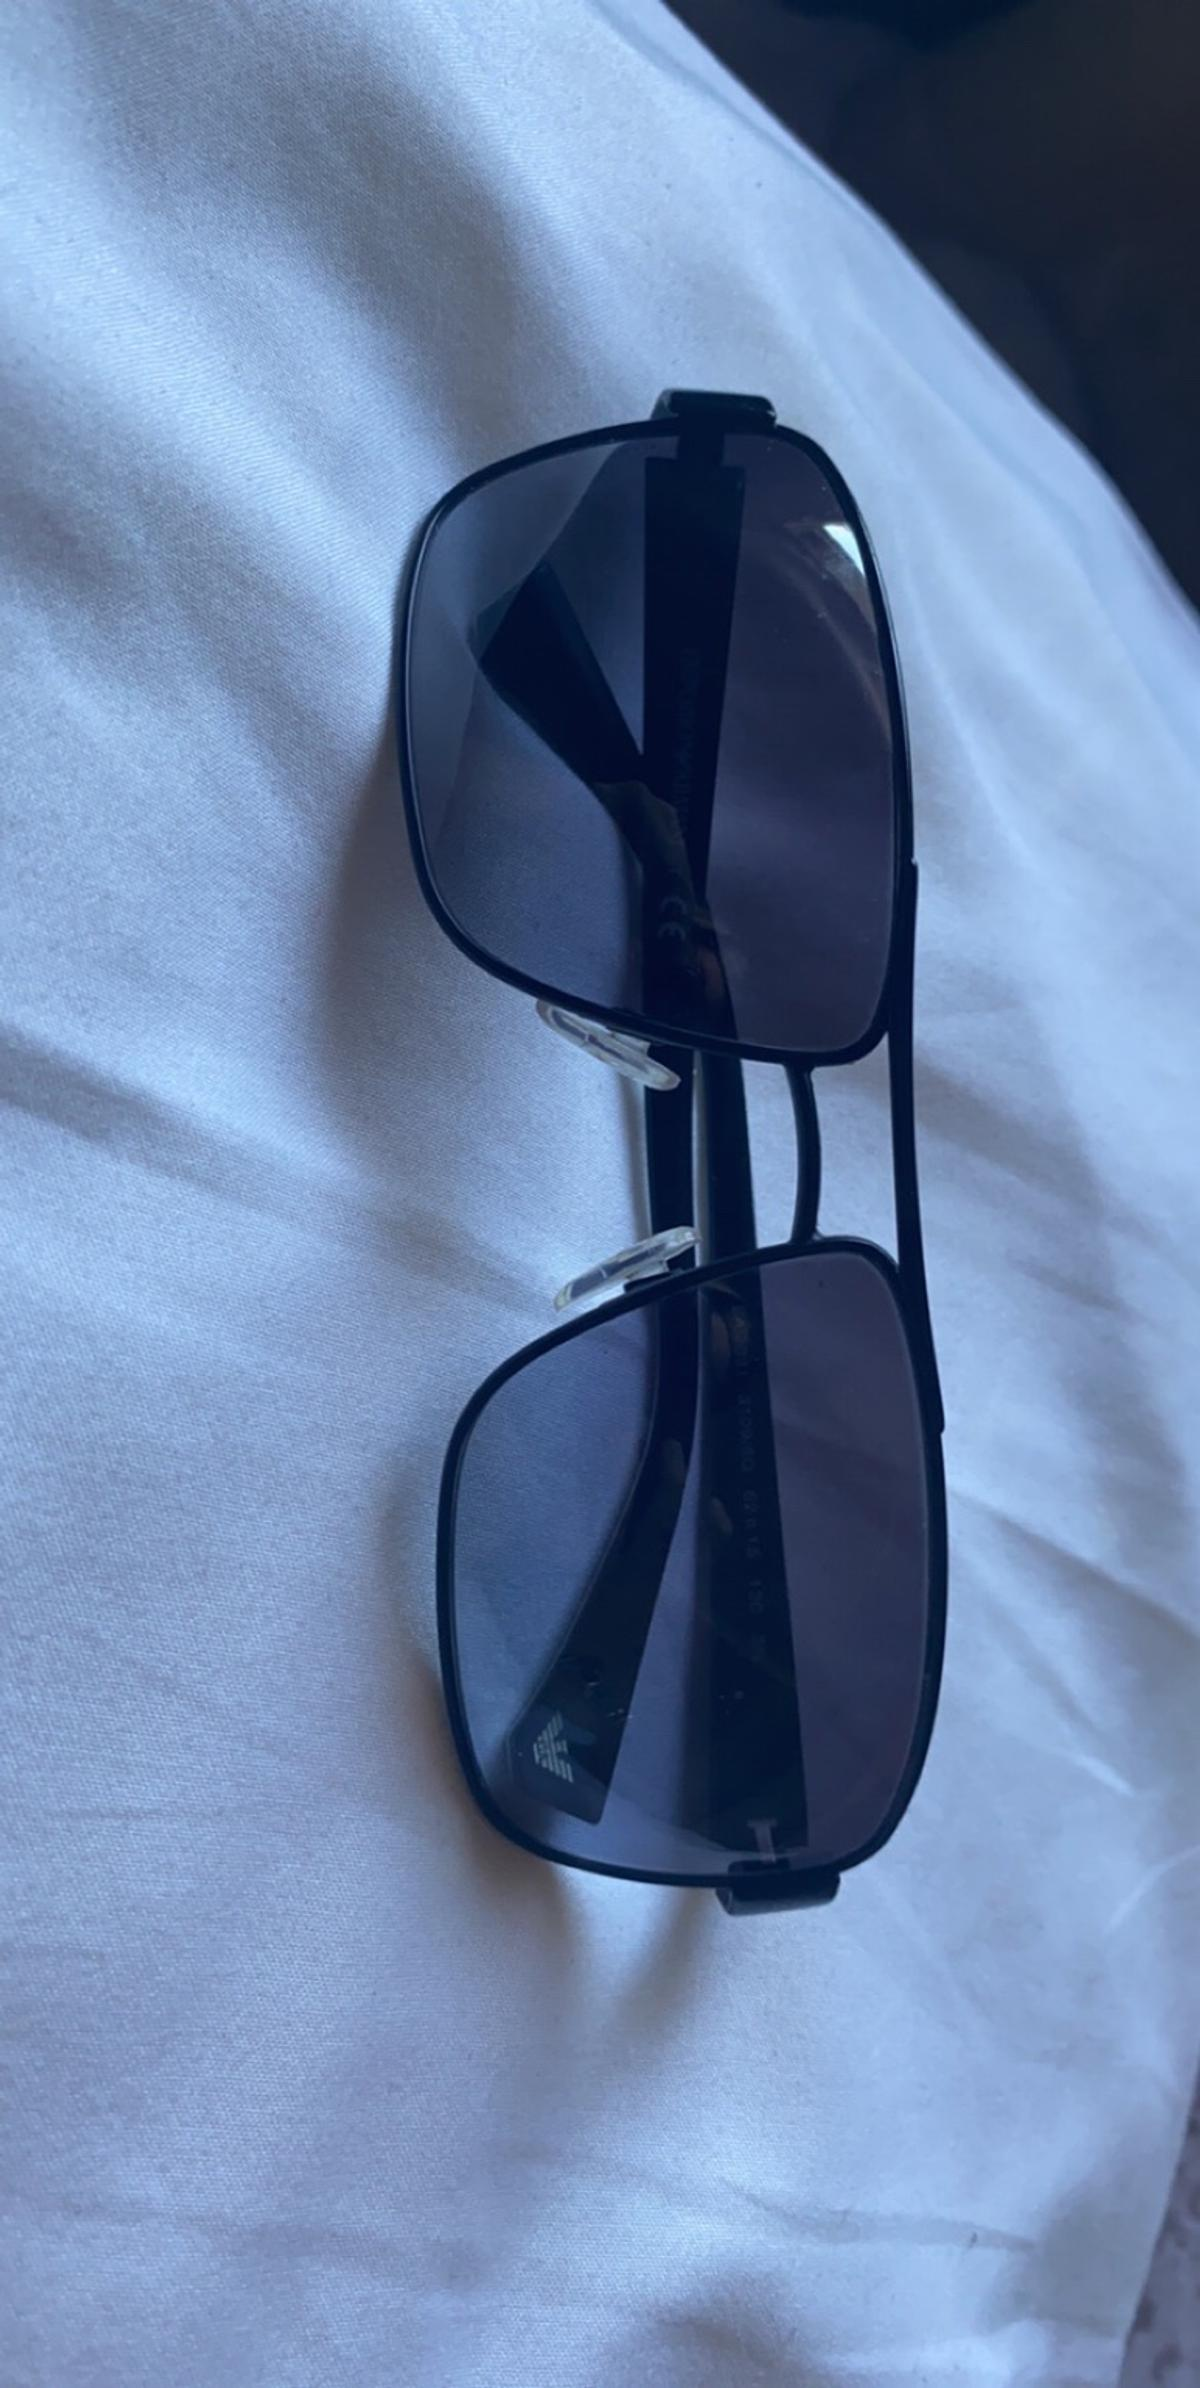 Genuine Emporio Armani Sunglasses Brought as a gift over a year ago but not been worn Comes with case too £50 Ono